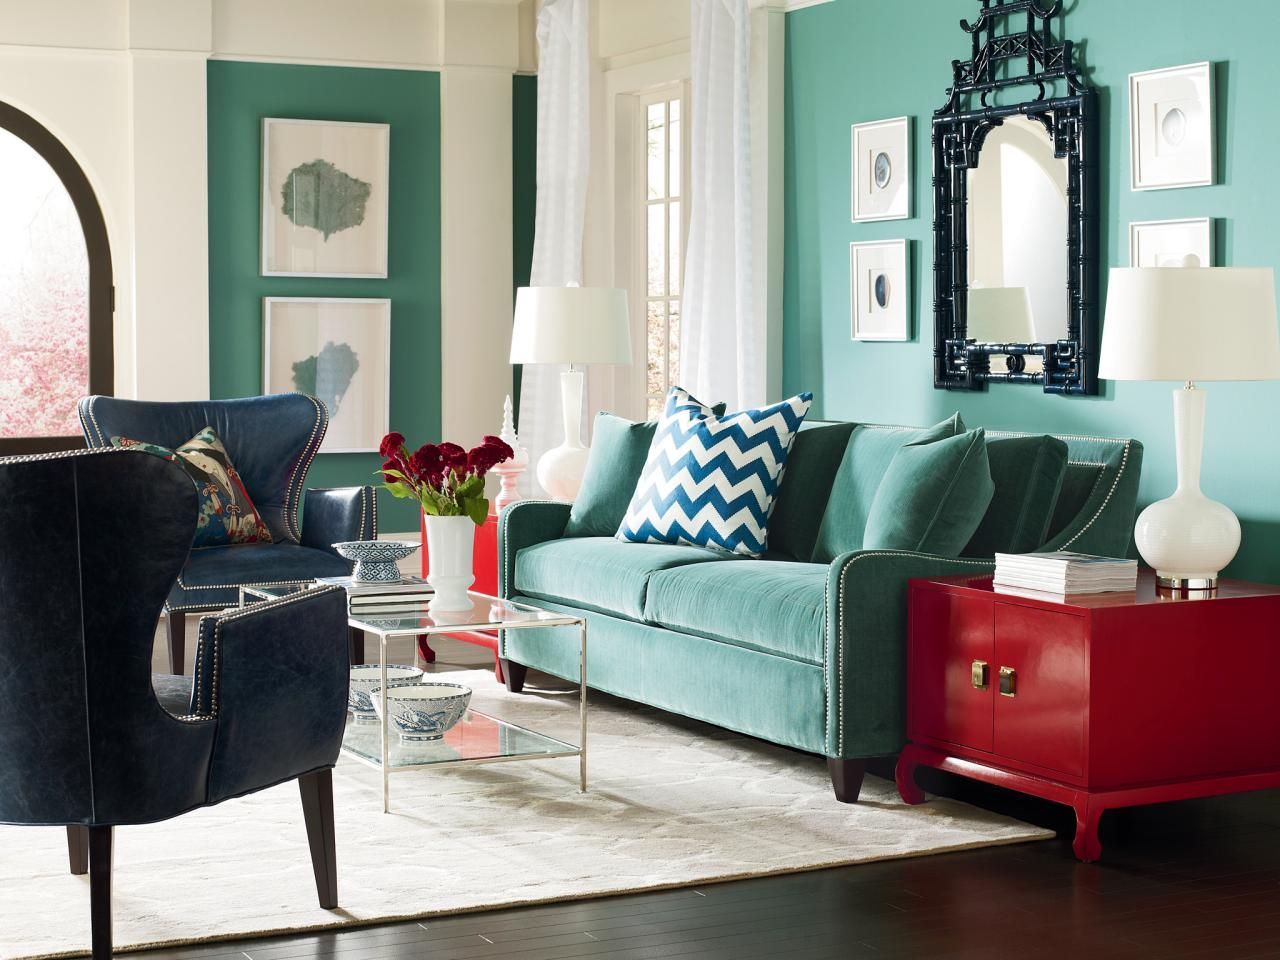 Colors We Love Classic Navy Blue Living Room Turquoise Turquoise Living Room Decor Living Room Red